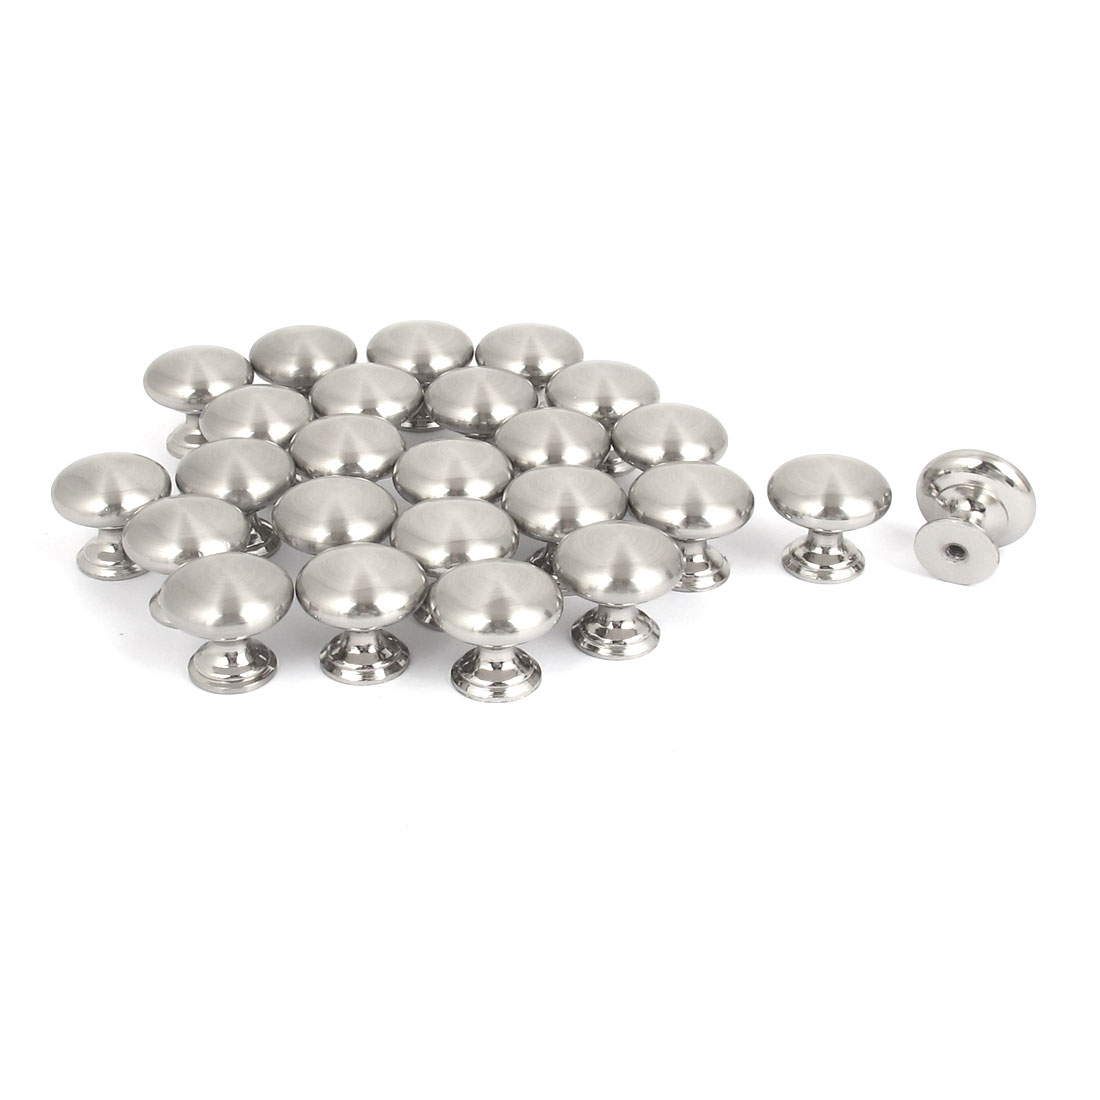 25pcs 25mm x 22mm Metal Round Pull Knob Silver Tone for Closet Drawer